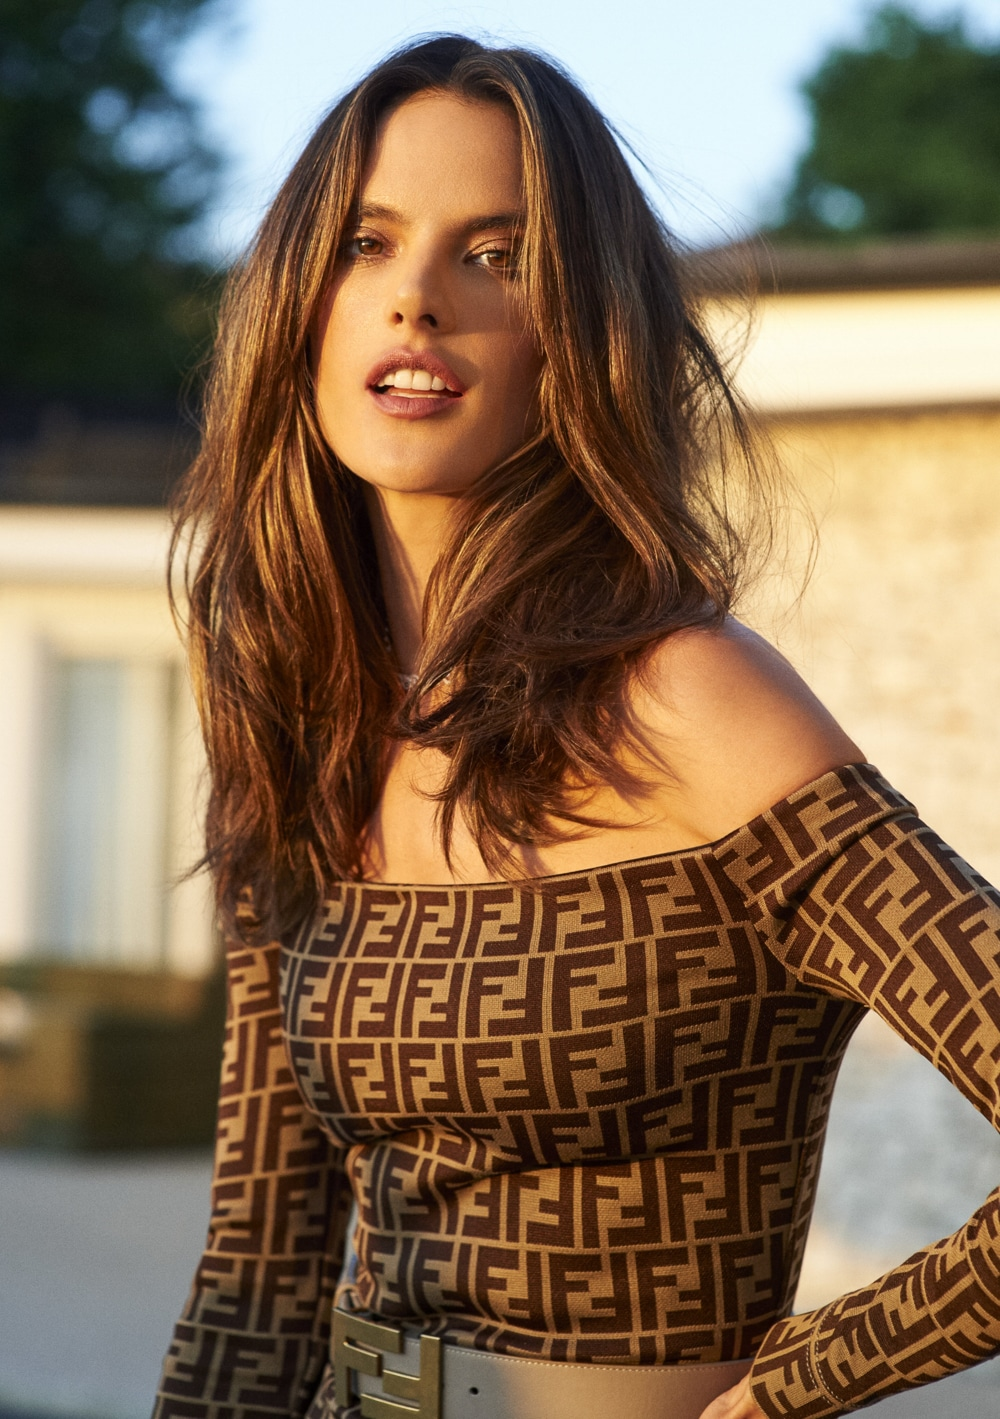 Alessandra Ambrosio covers InStyle Russia October 2018 by Stewart Shining